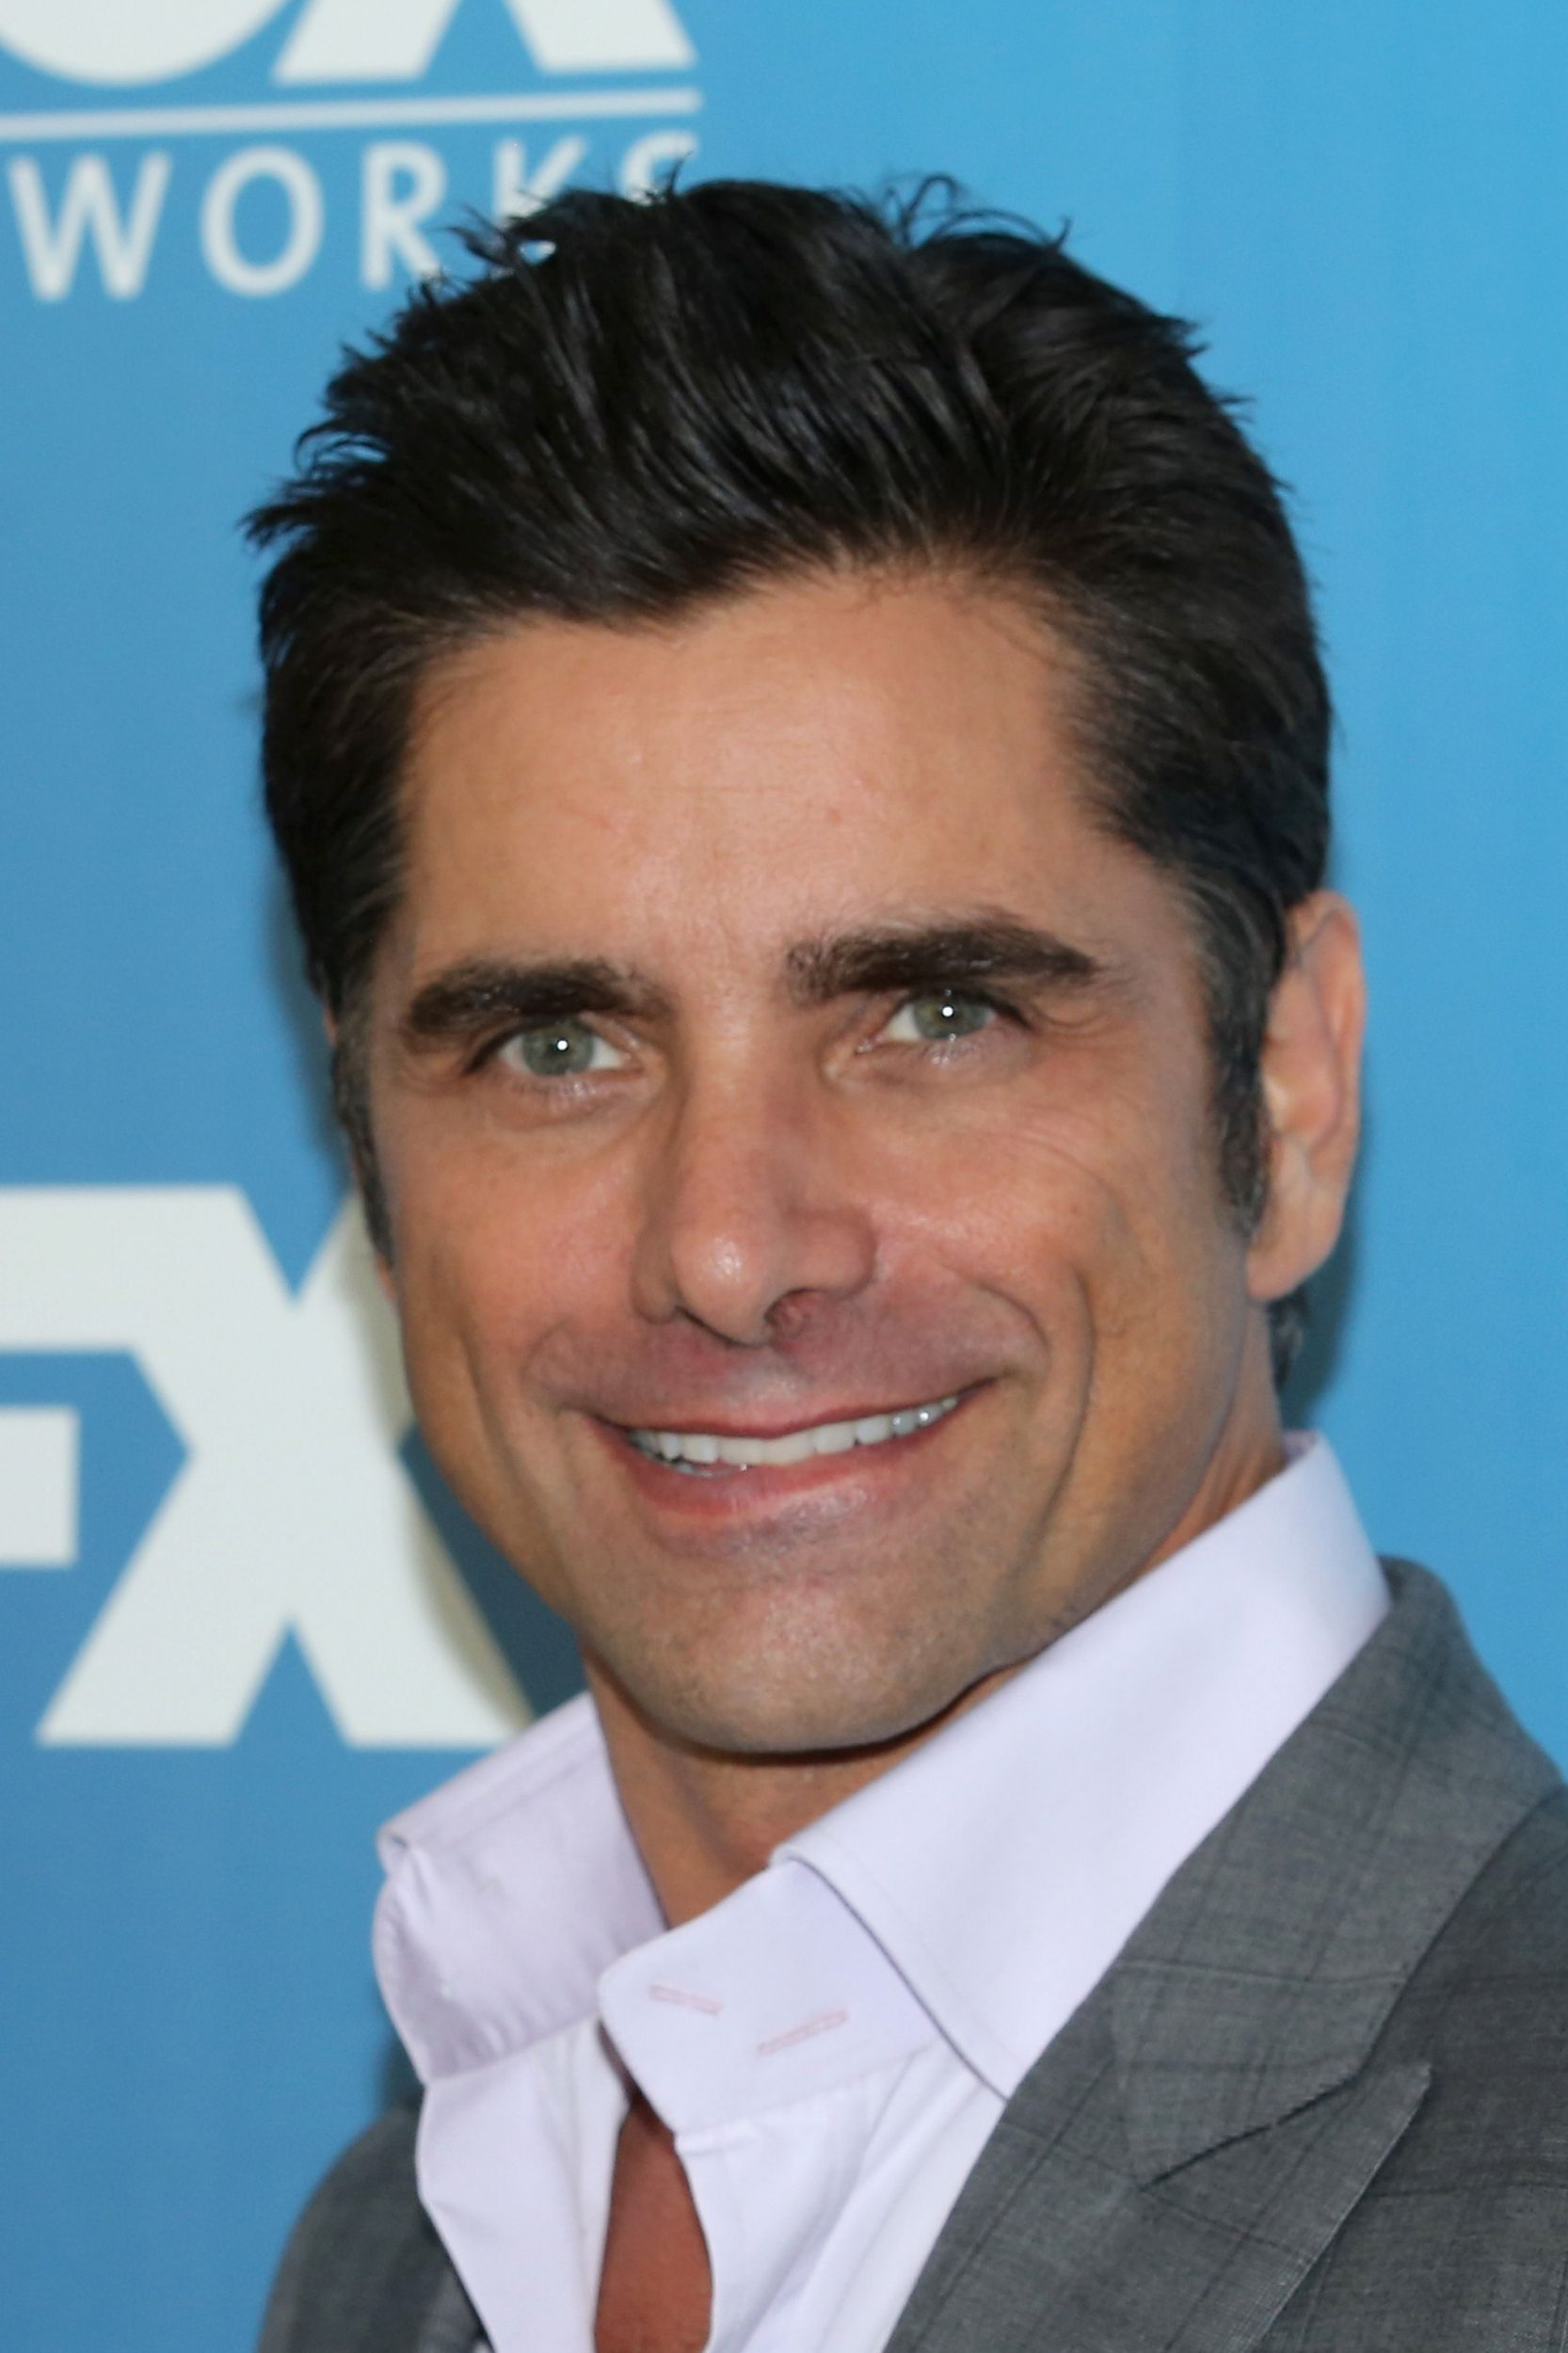 John Stamos Really Did Try to Get the Olsen Twins Fired From 'Full House'